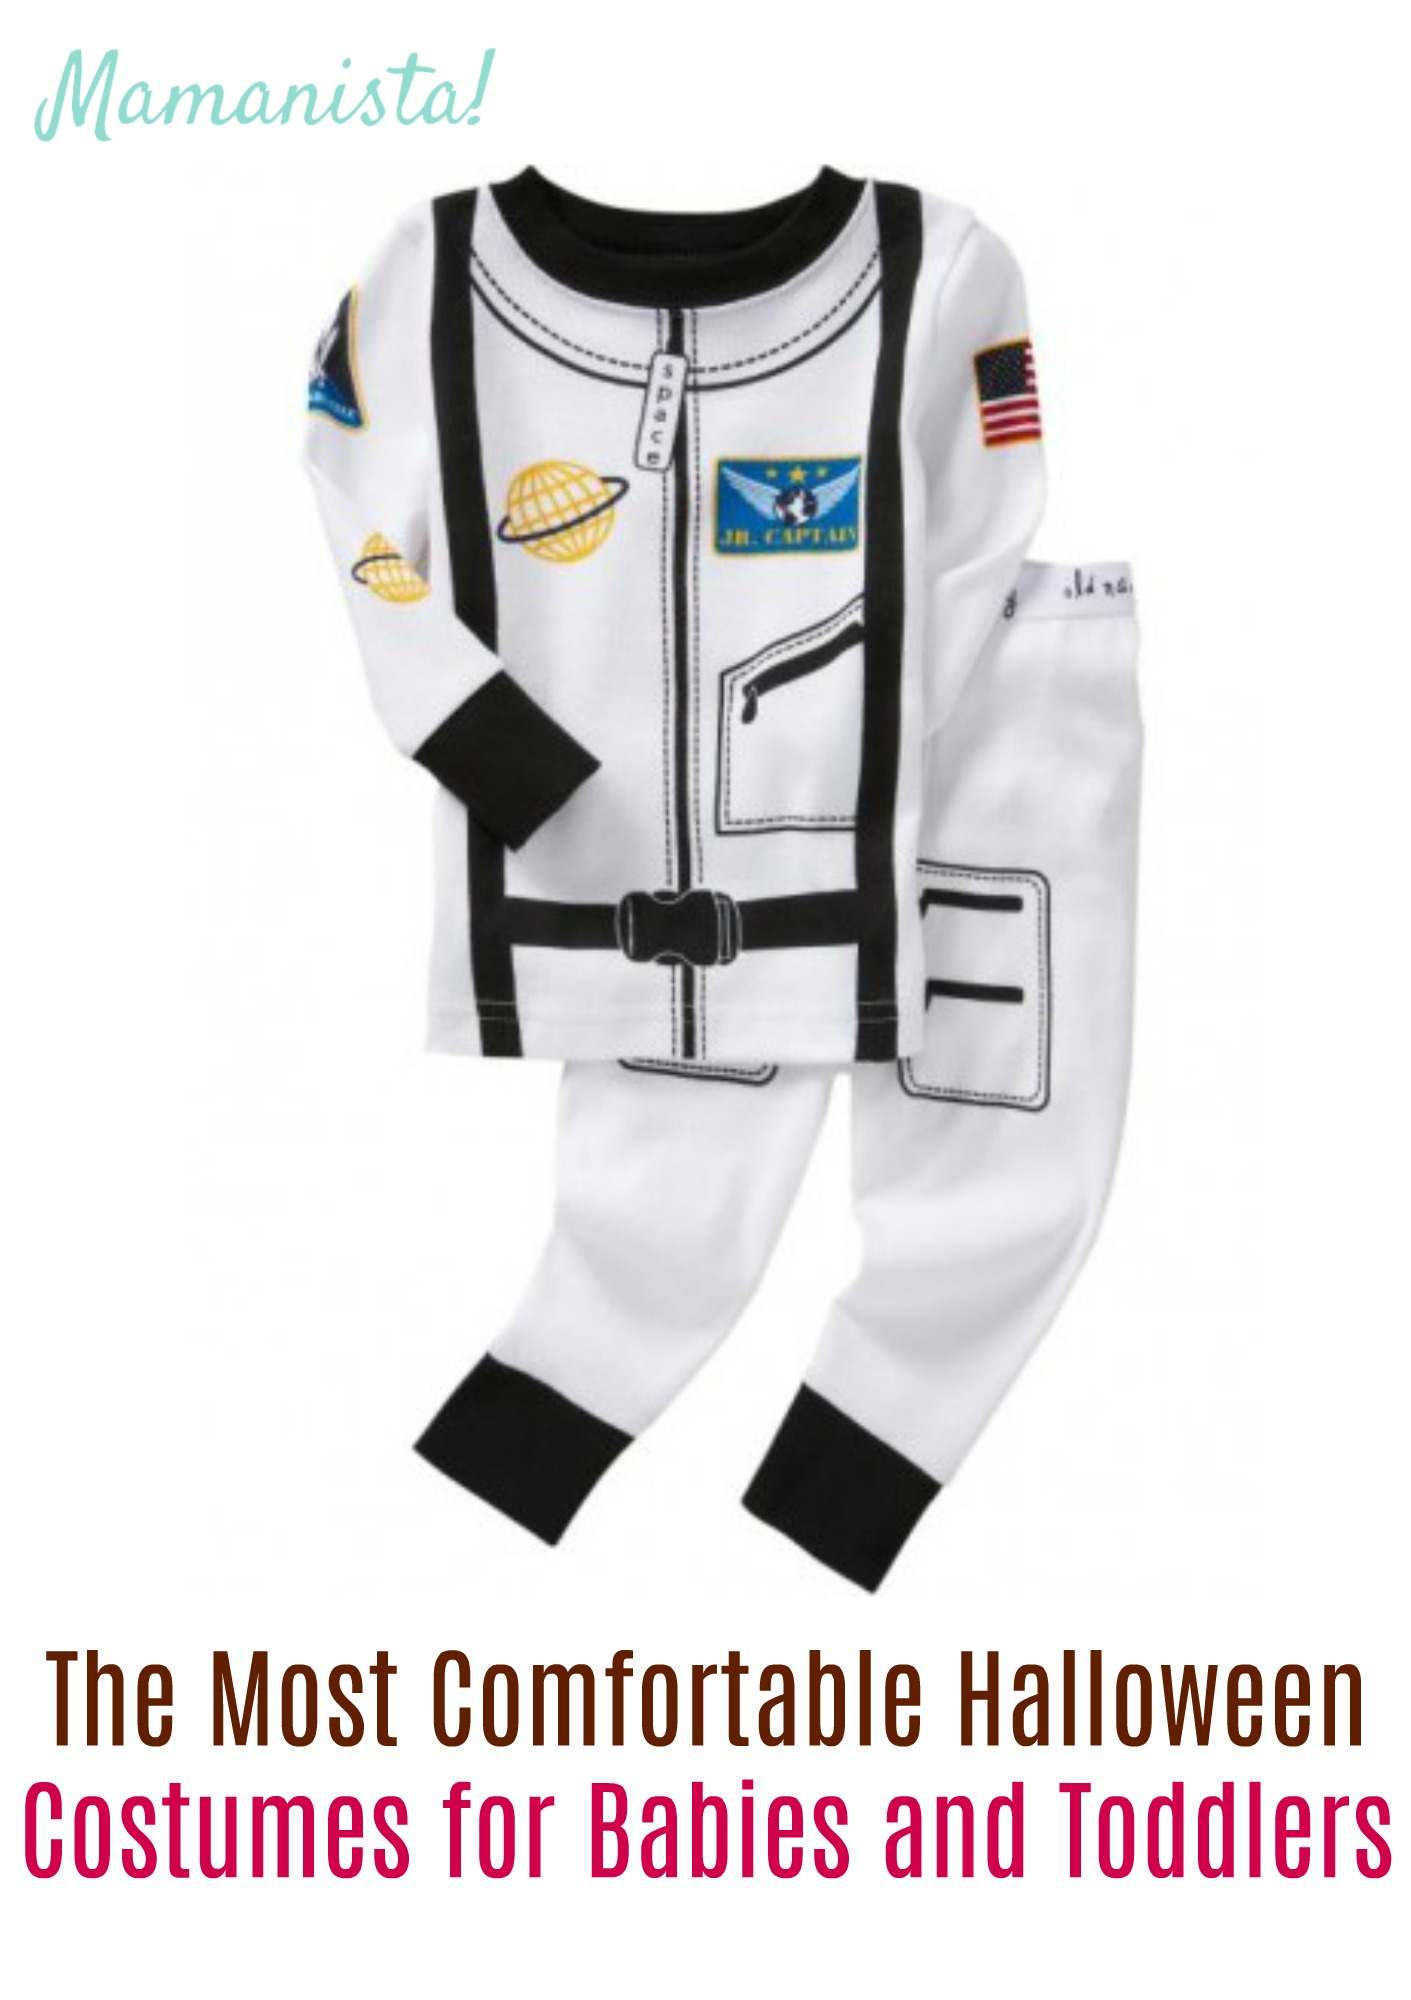 The Most Comfortable Halloween Costumes for Babies and Toddlers